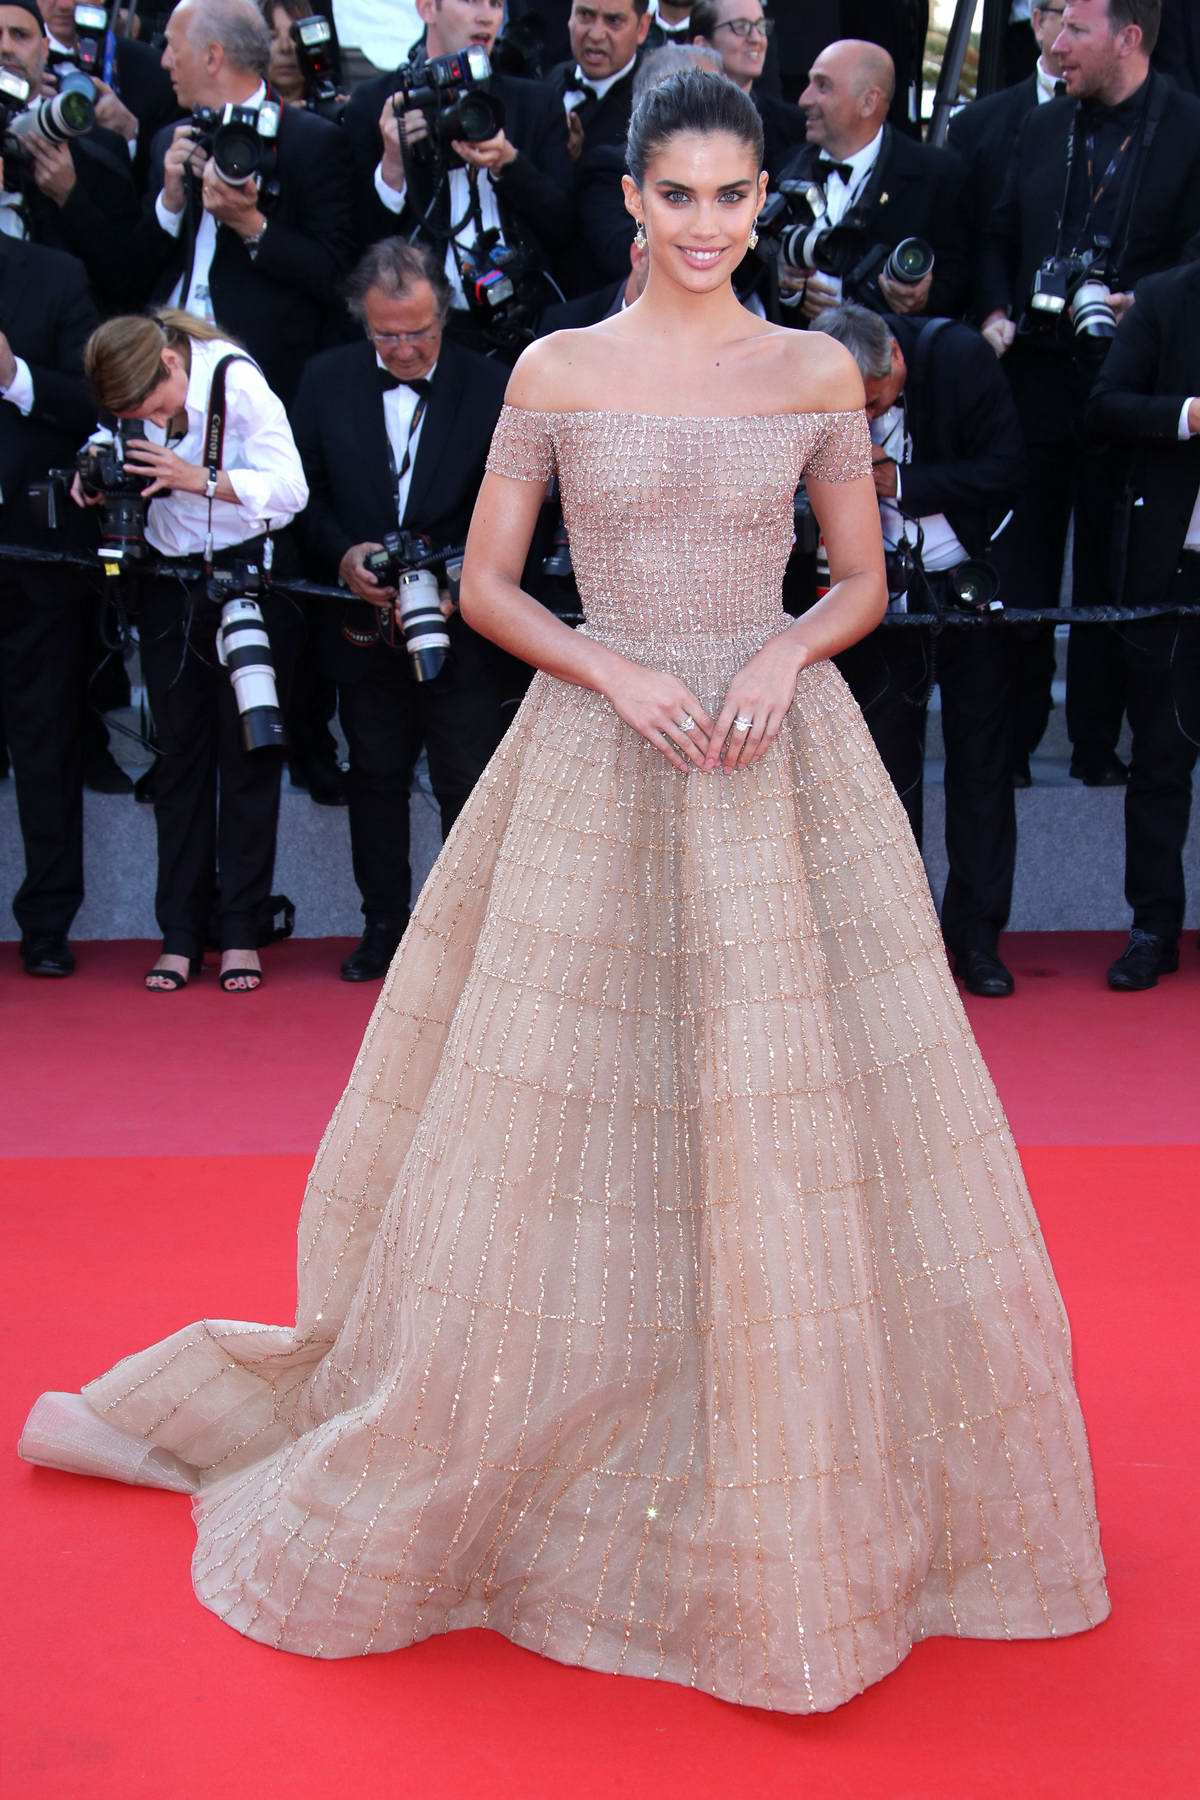 Sara sampaio at the premiere of the killing of a sacred deer in cannes